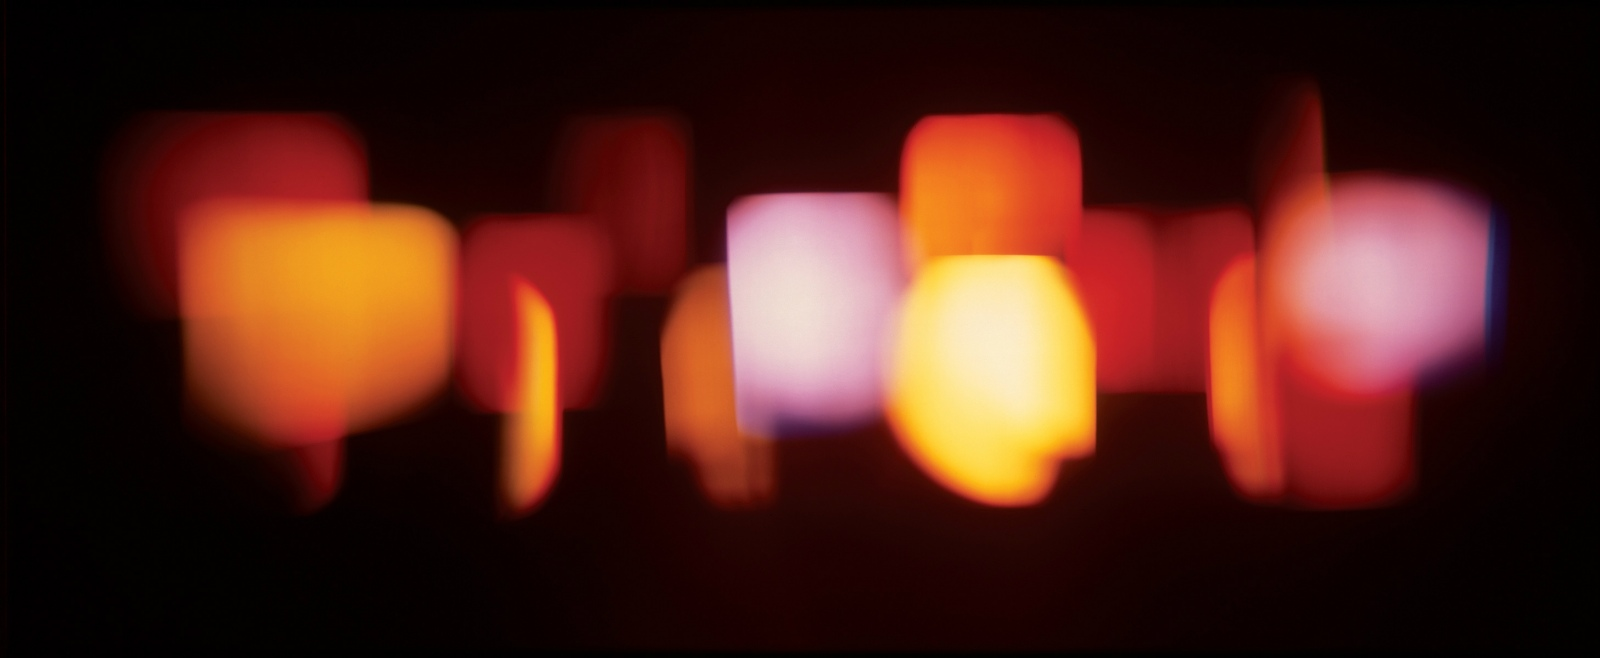 Rob and Nick Carter - RN609, Coloured Light Projections, 2006 · © Copyright 2017